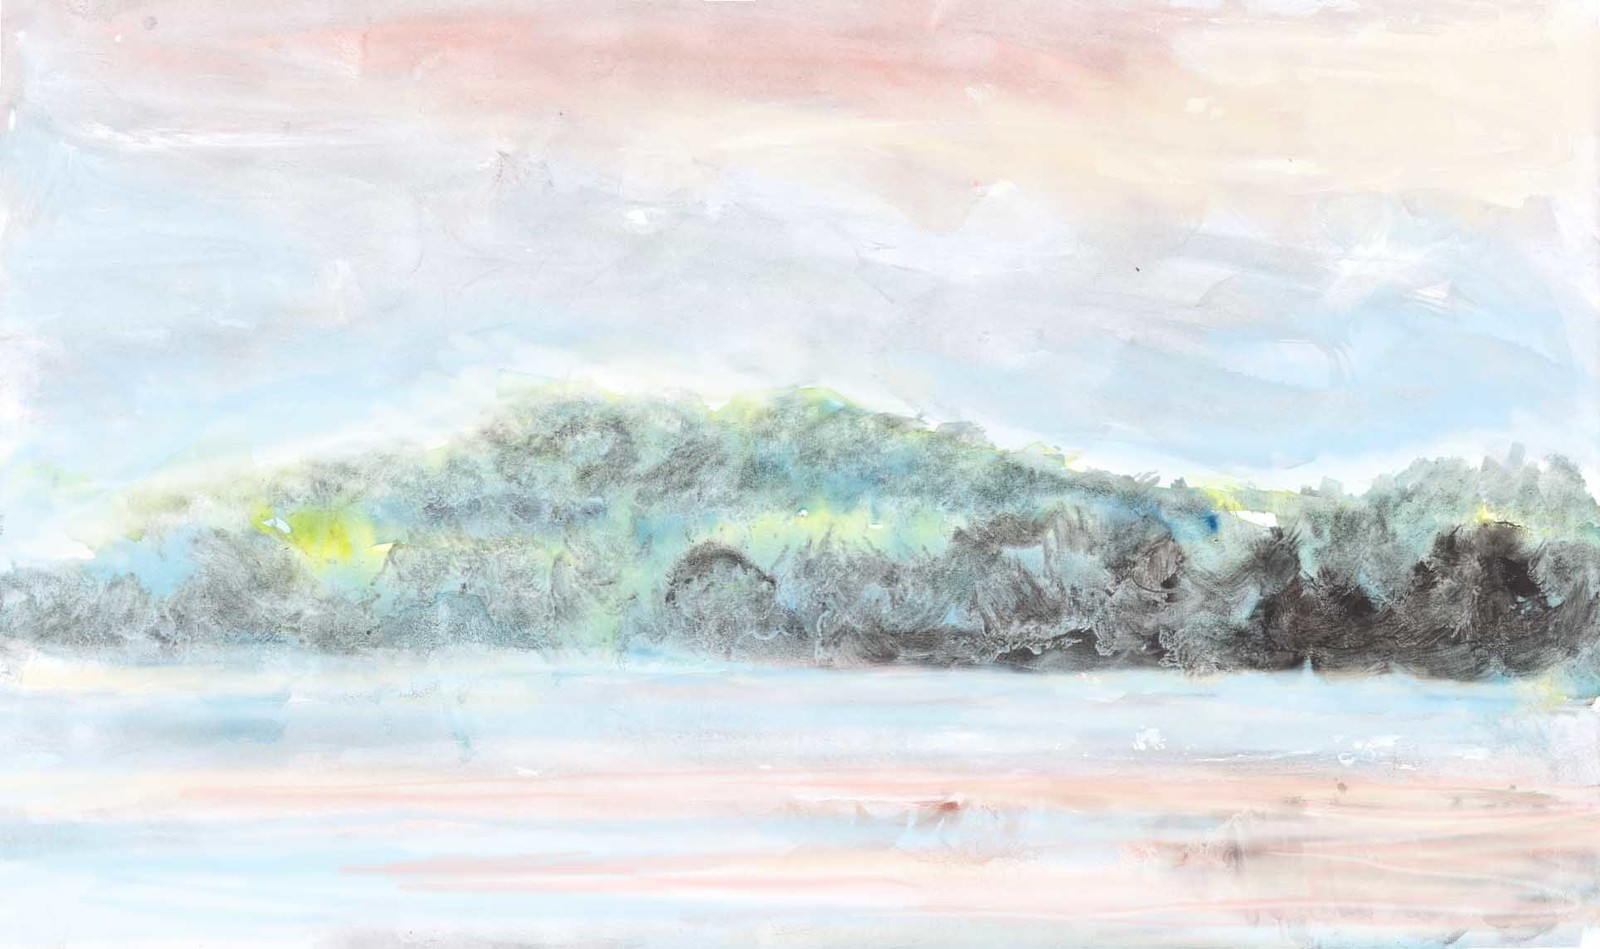 drawing of flooded scenery (background)